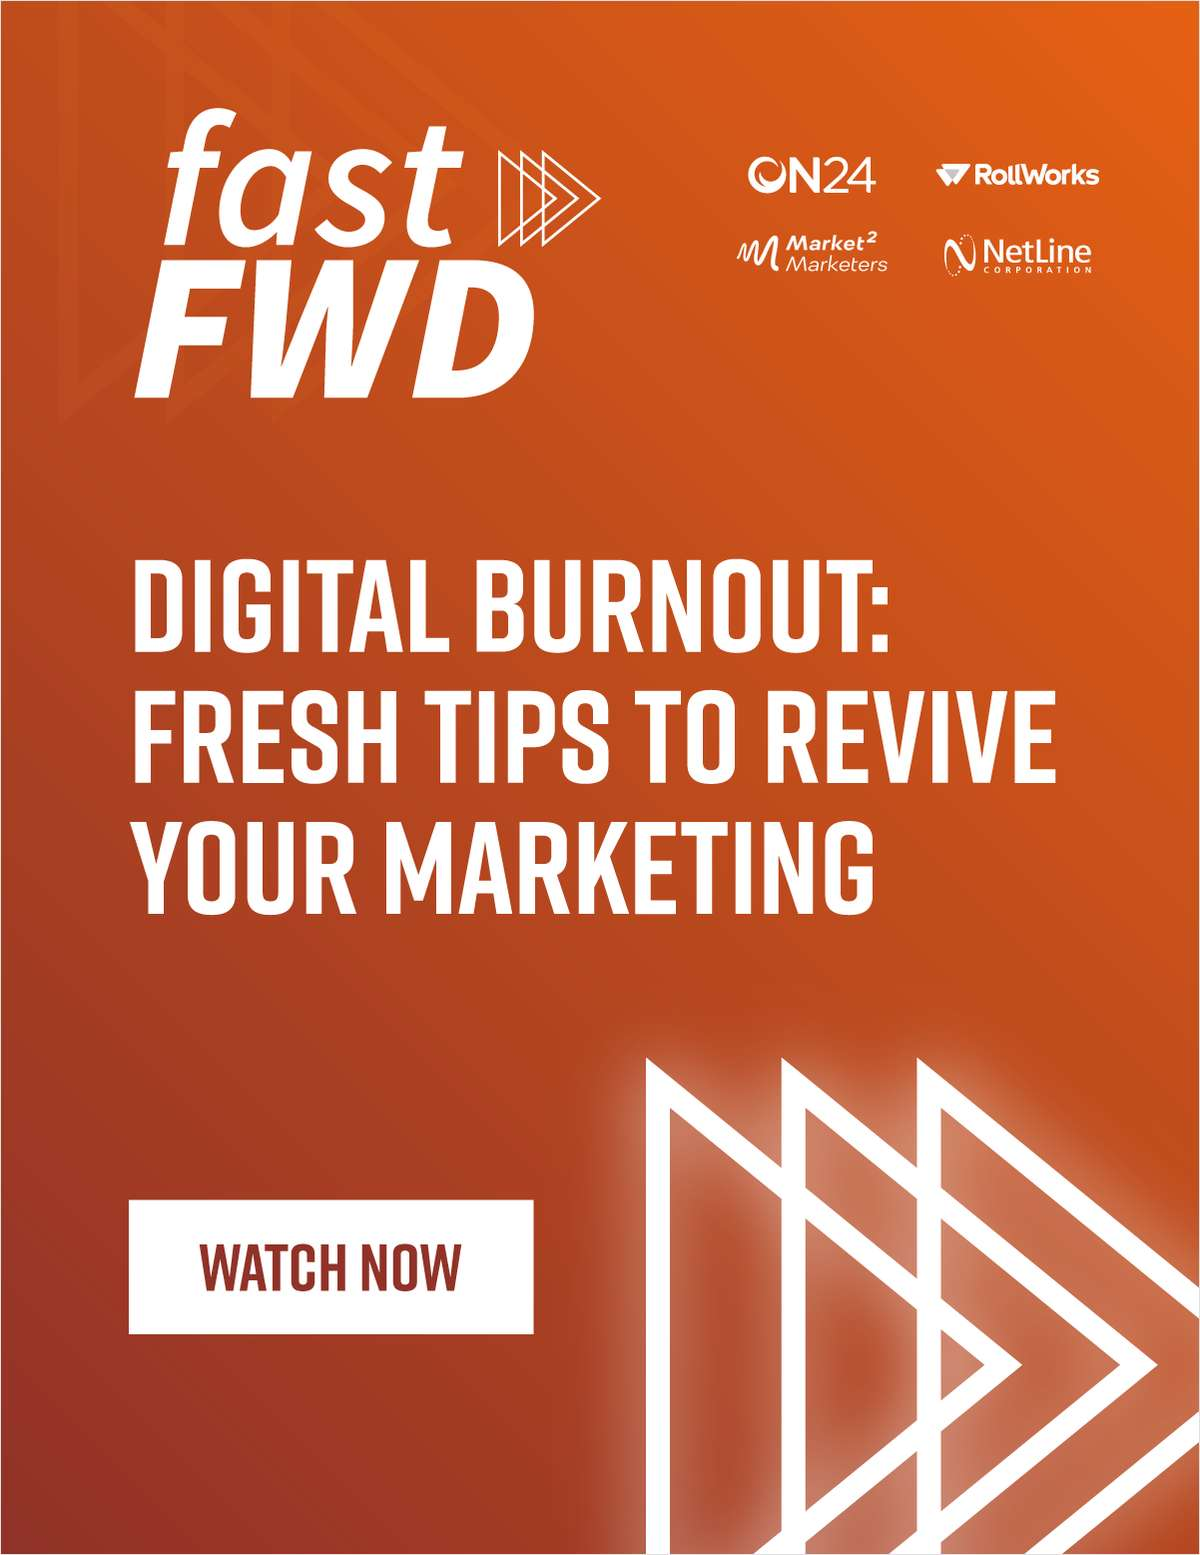 Digital Burnout: Fresh Tips to Revive your Marketing